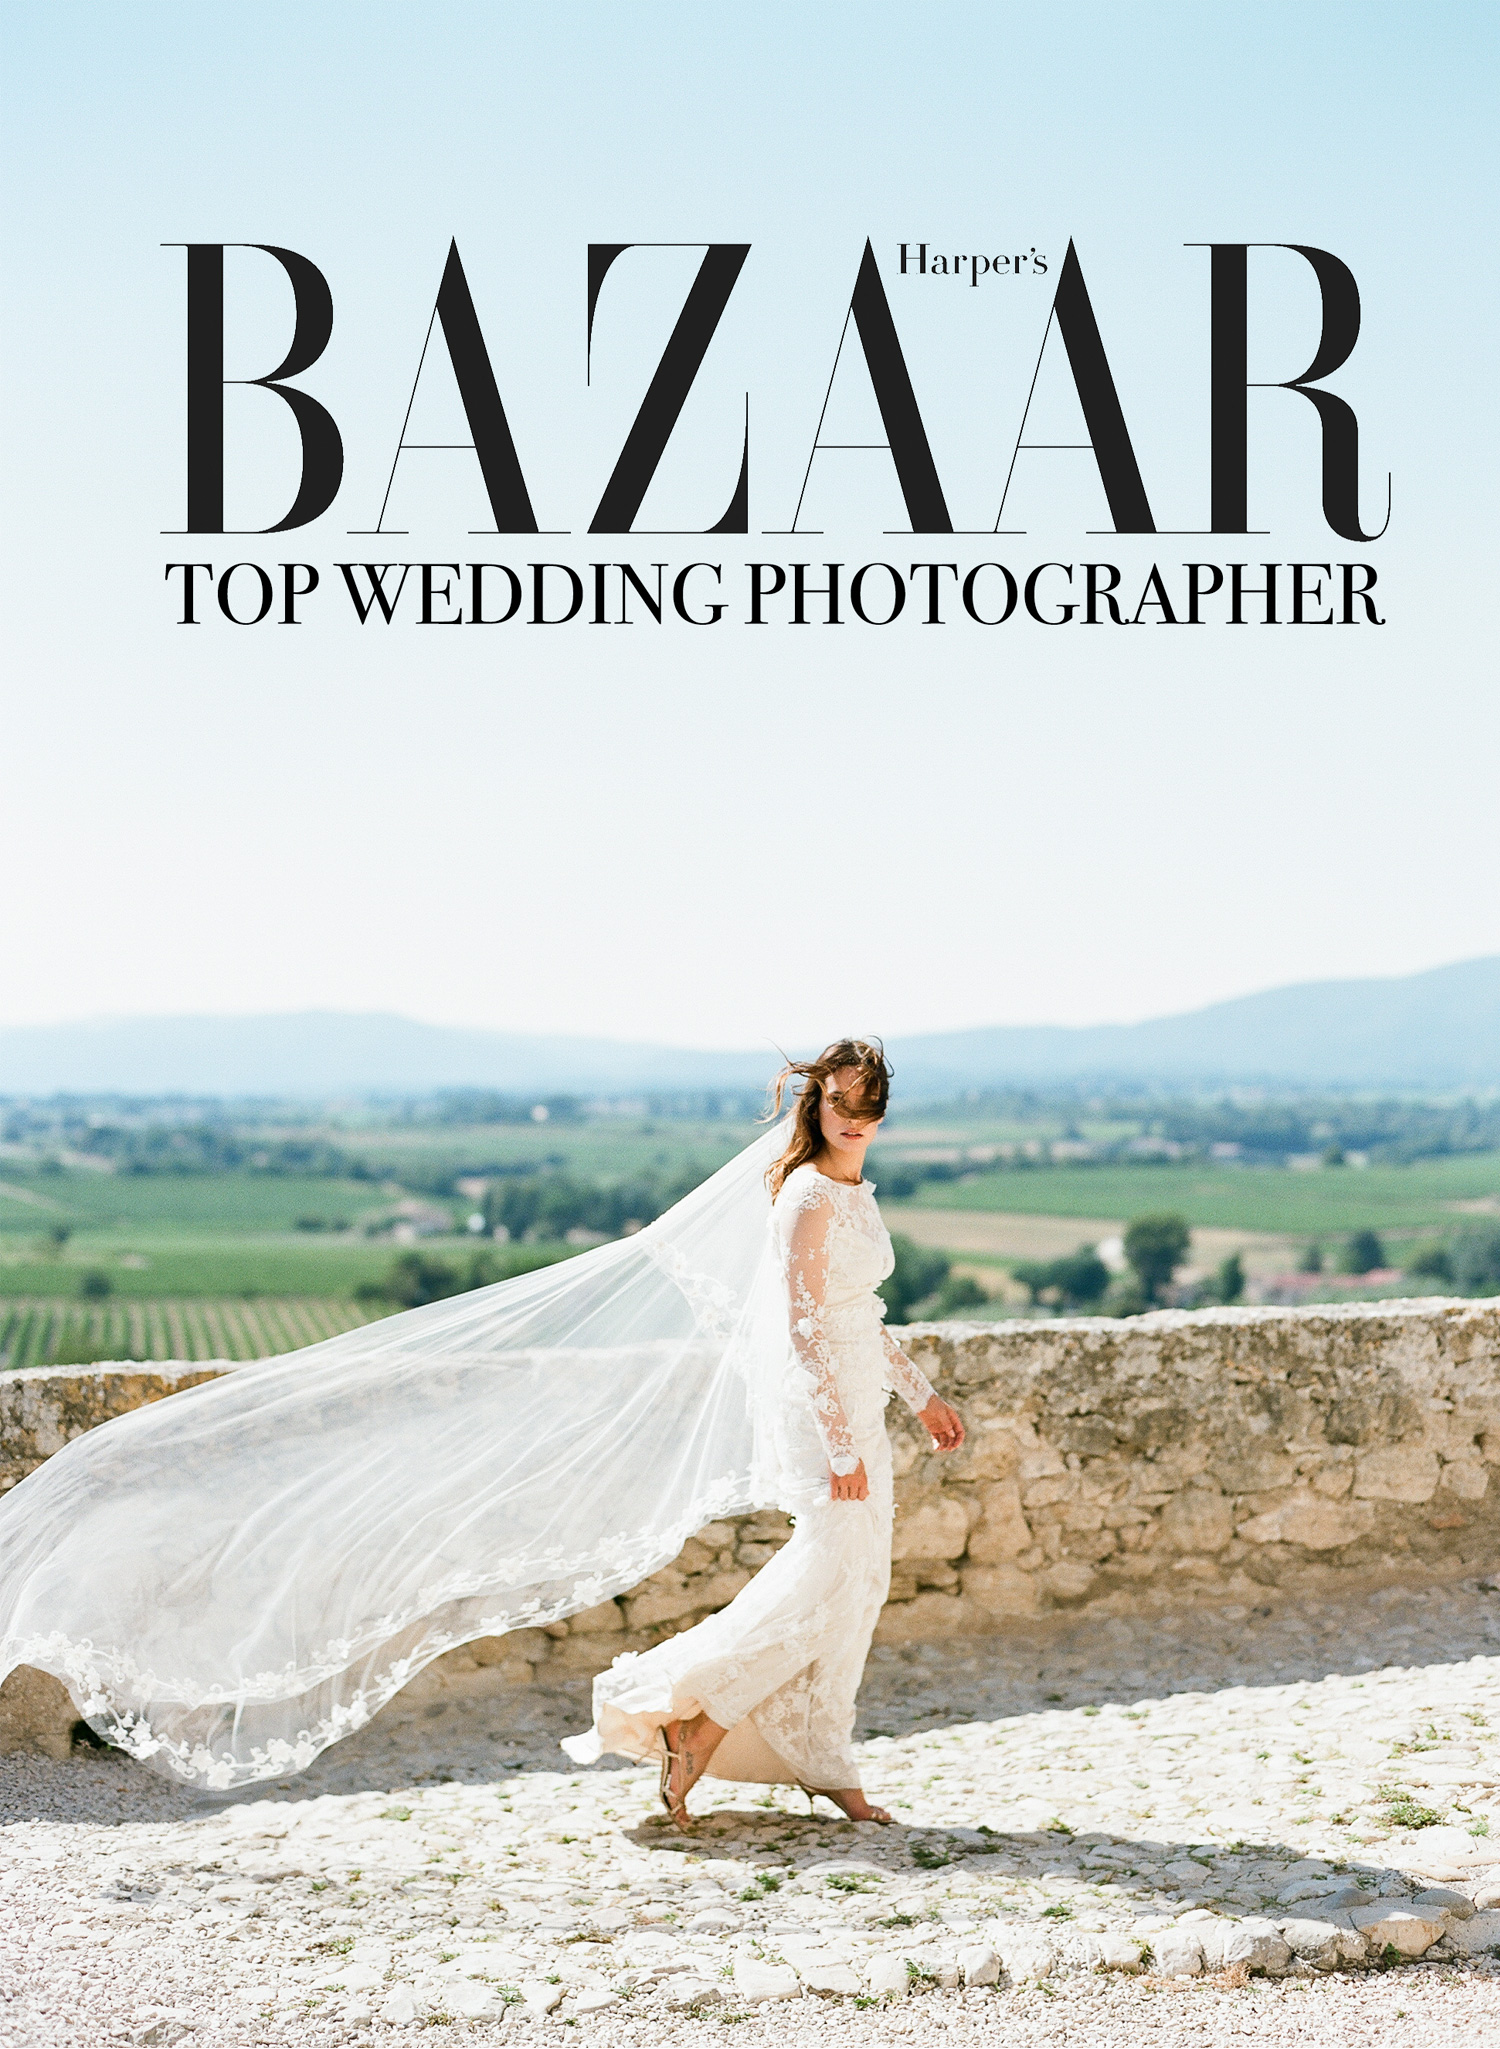 Sylvie Gil named one of Harper's Bazaar top 19 wedding photographers; photo by Sylvie Gil